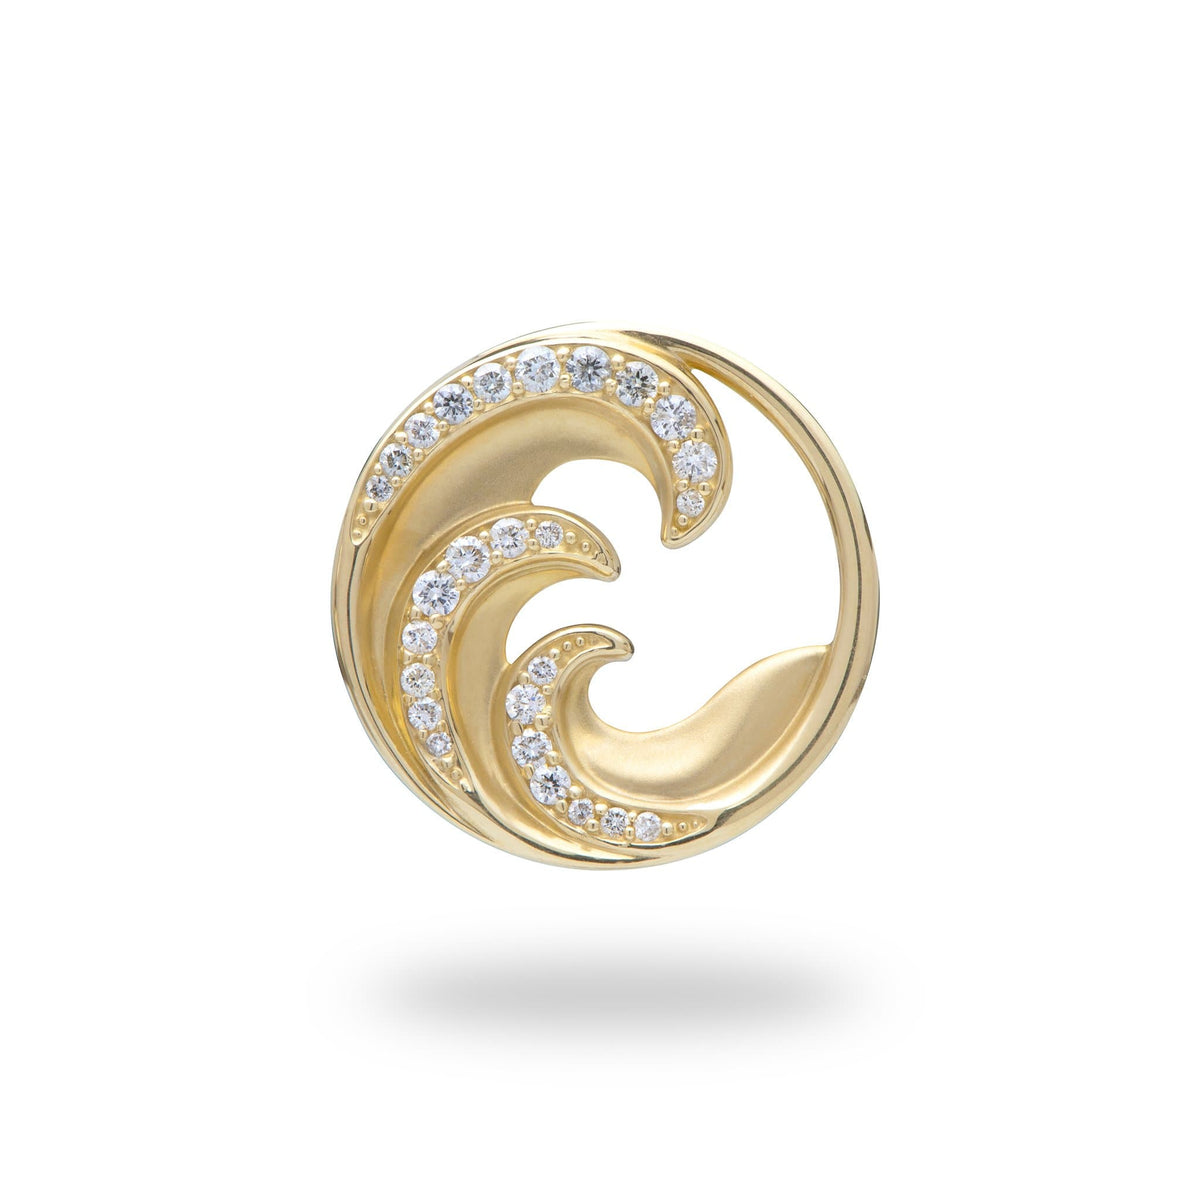 Nalu Pendant in Gold with Diamonds - 22mm - Maui Divers Jewelry